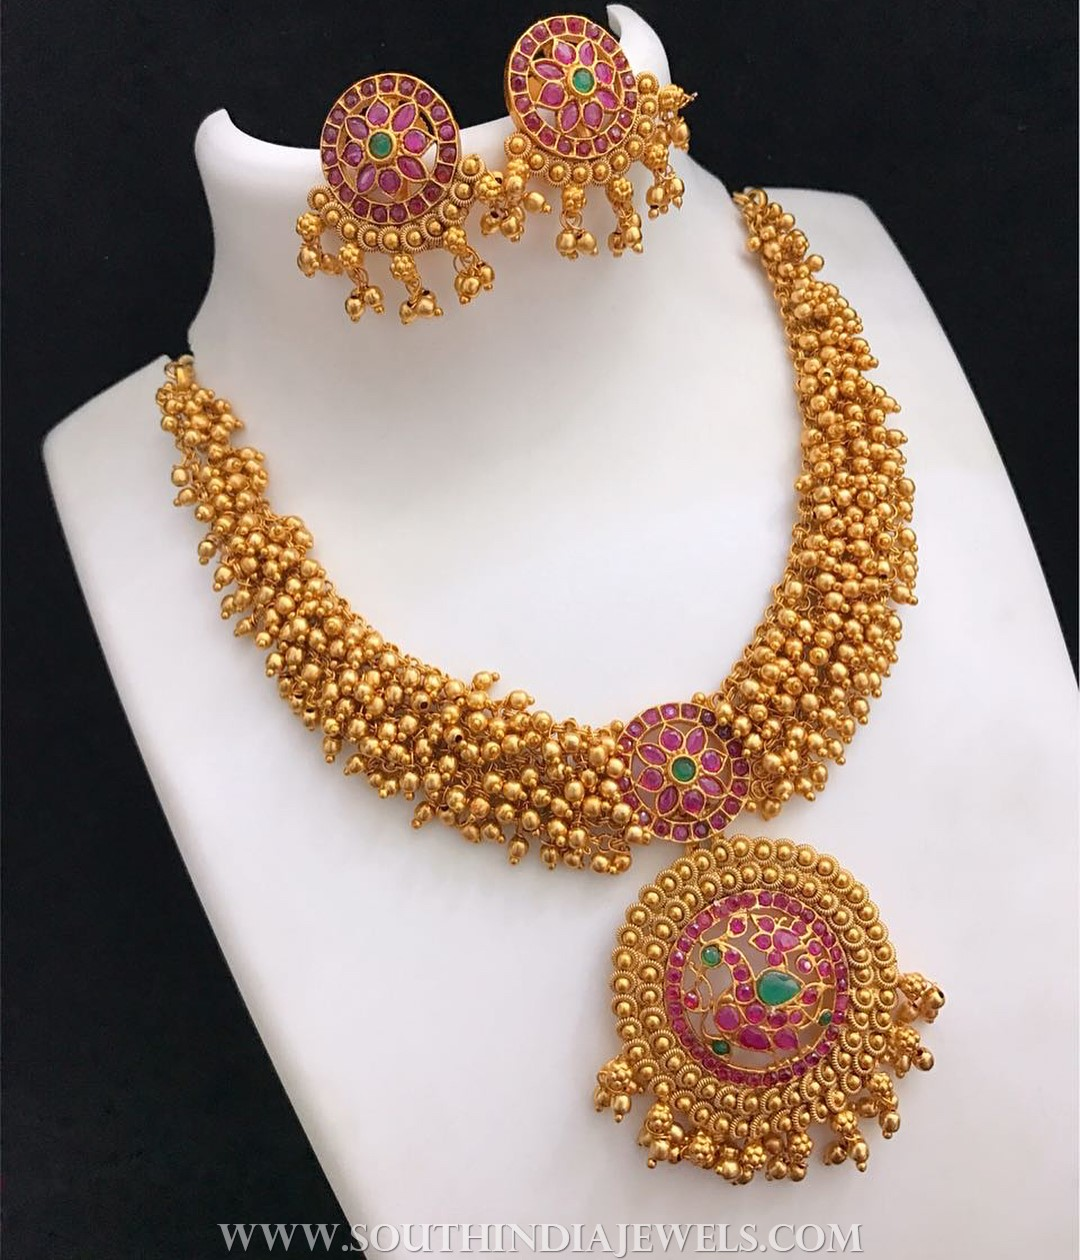 jumki online cz and antique necklace set kundan stones ruby chain with pendant pearls